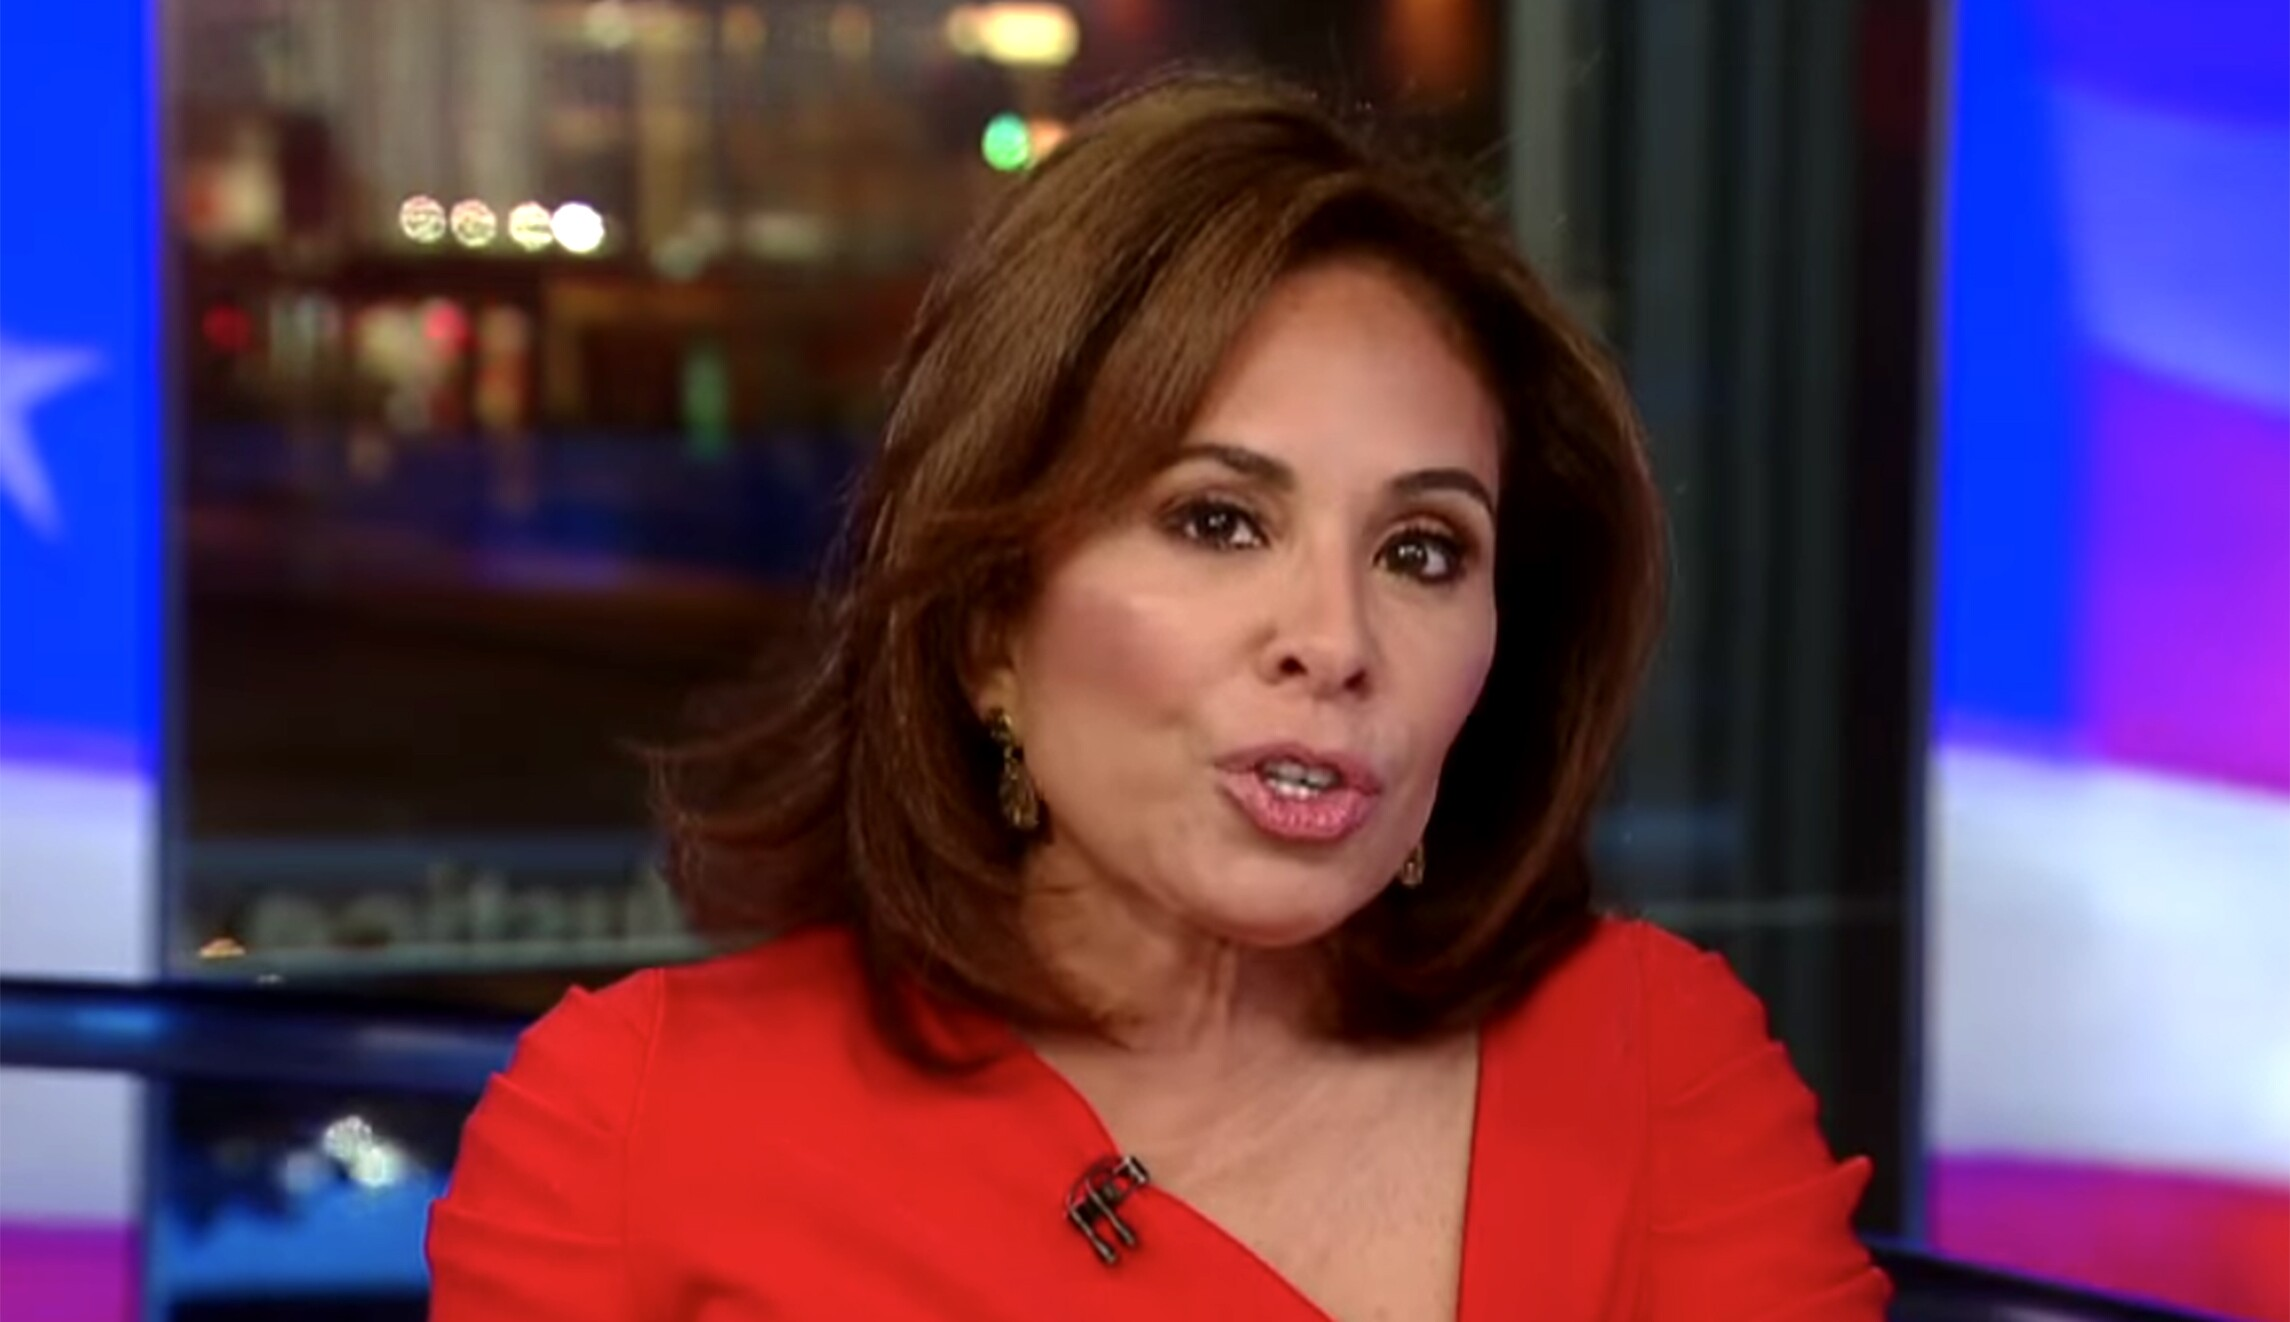 fox news host jeanine pirro wants be attorney general report